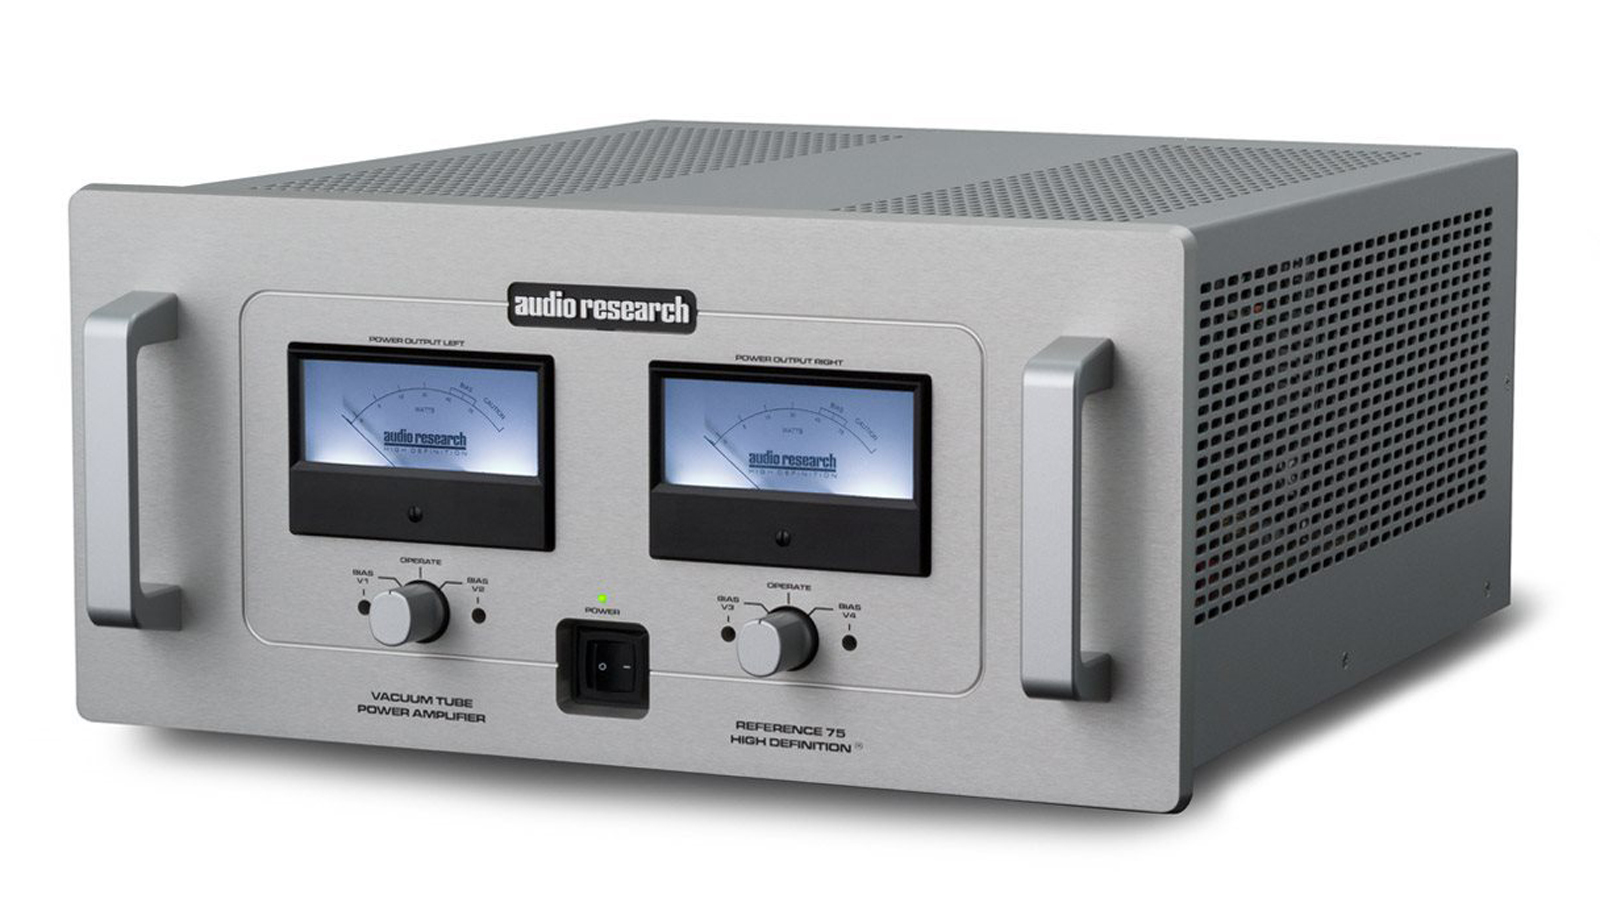 Reference 75 Se Audio Research Power Amplifier Venue Vu Meter For Amplifiers With Its Two Large Meters Which Display Output As Well Provide Bias Adjustments The Has A Timeless Appearance Resembling